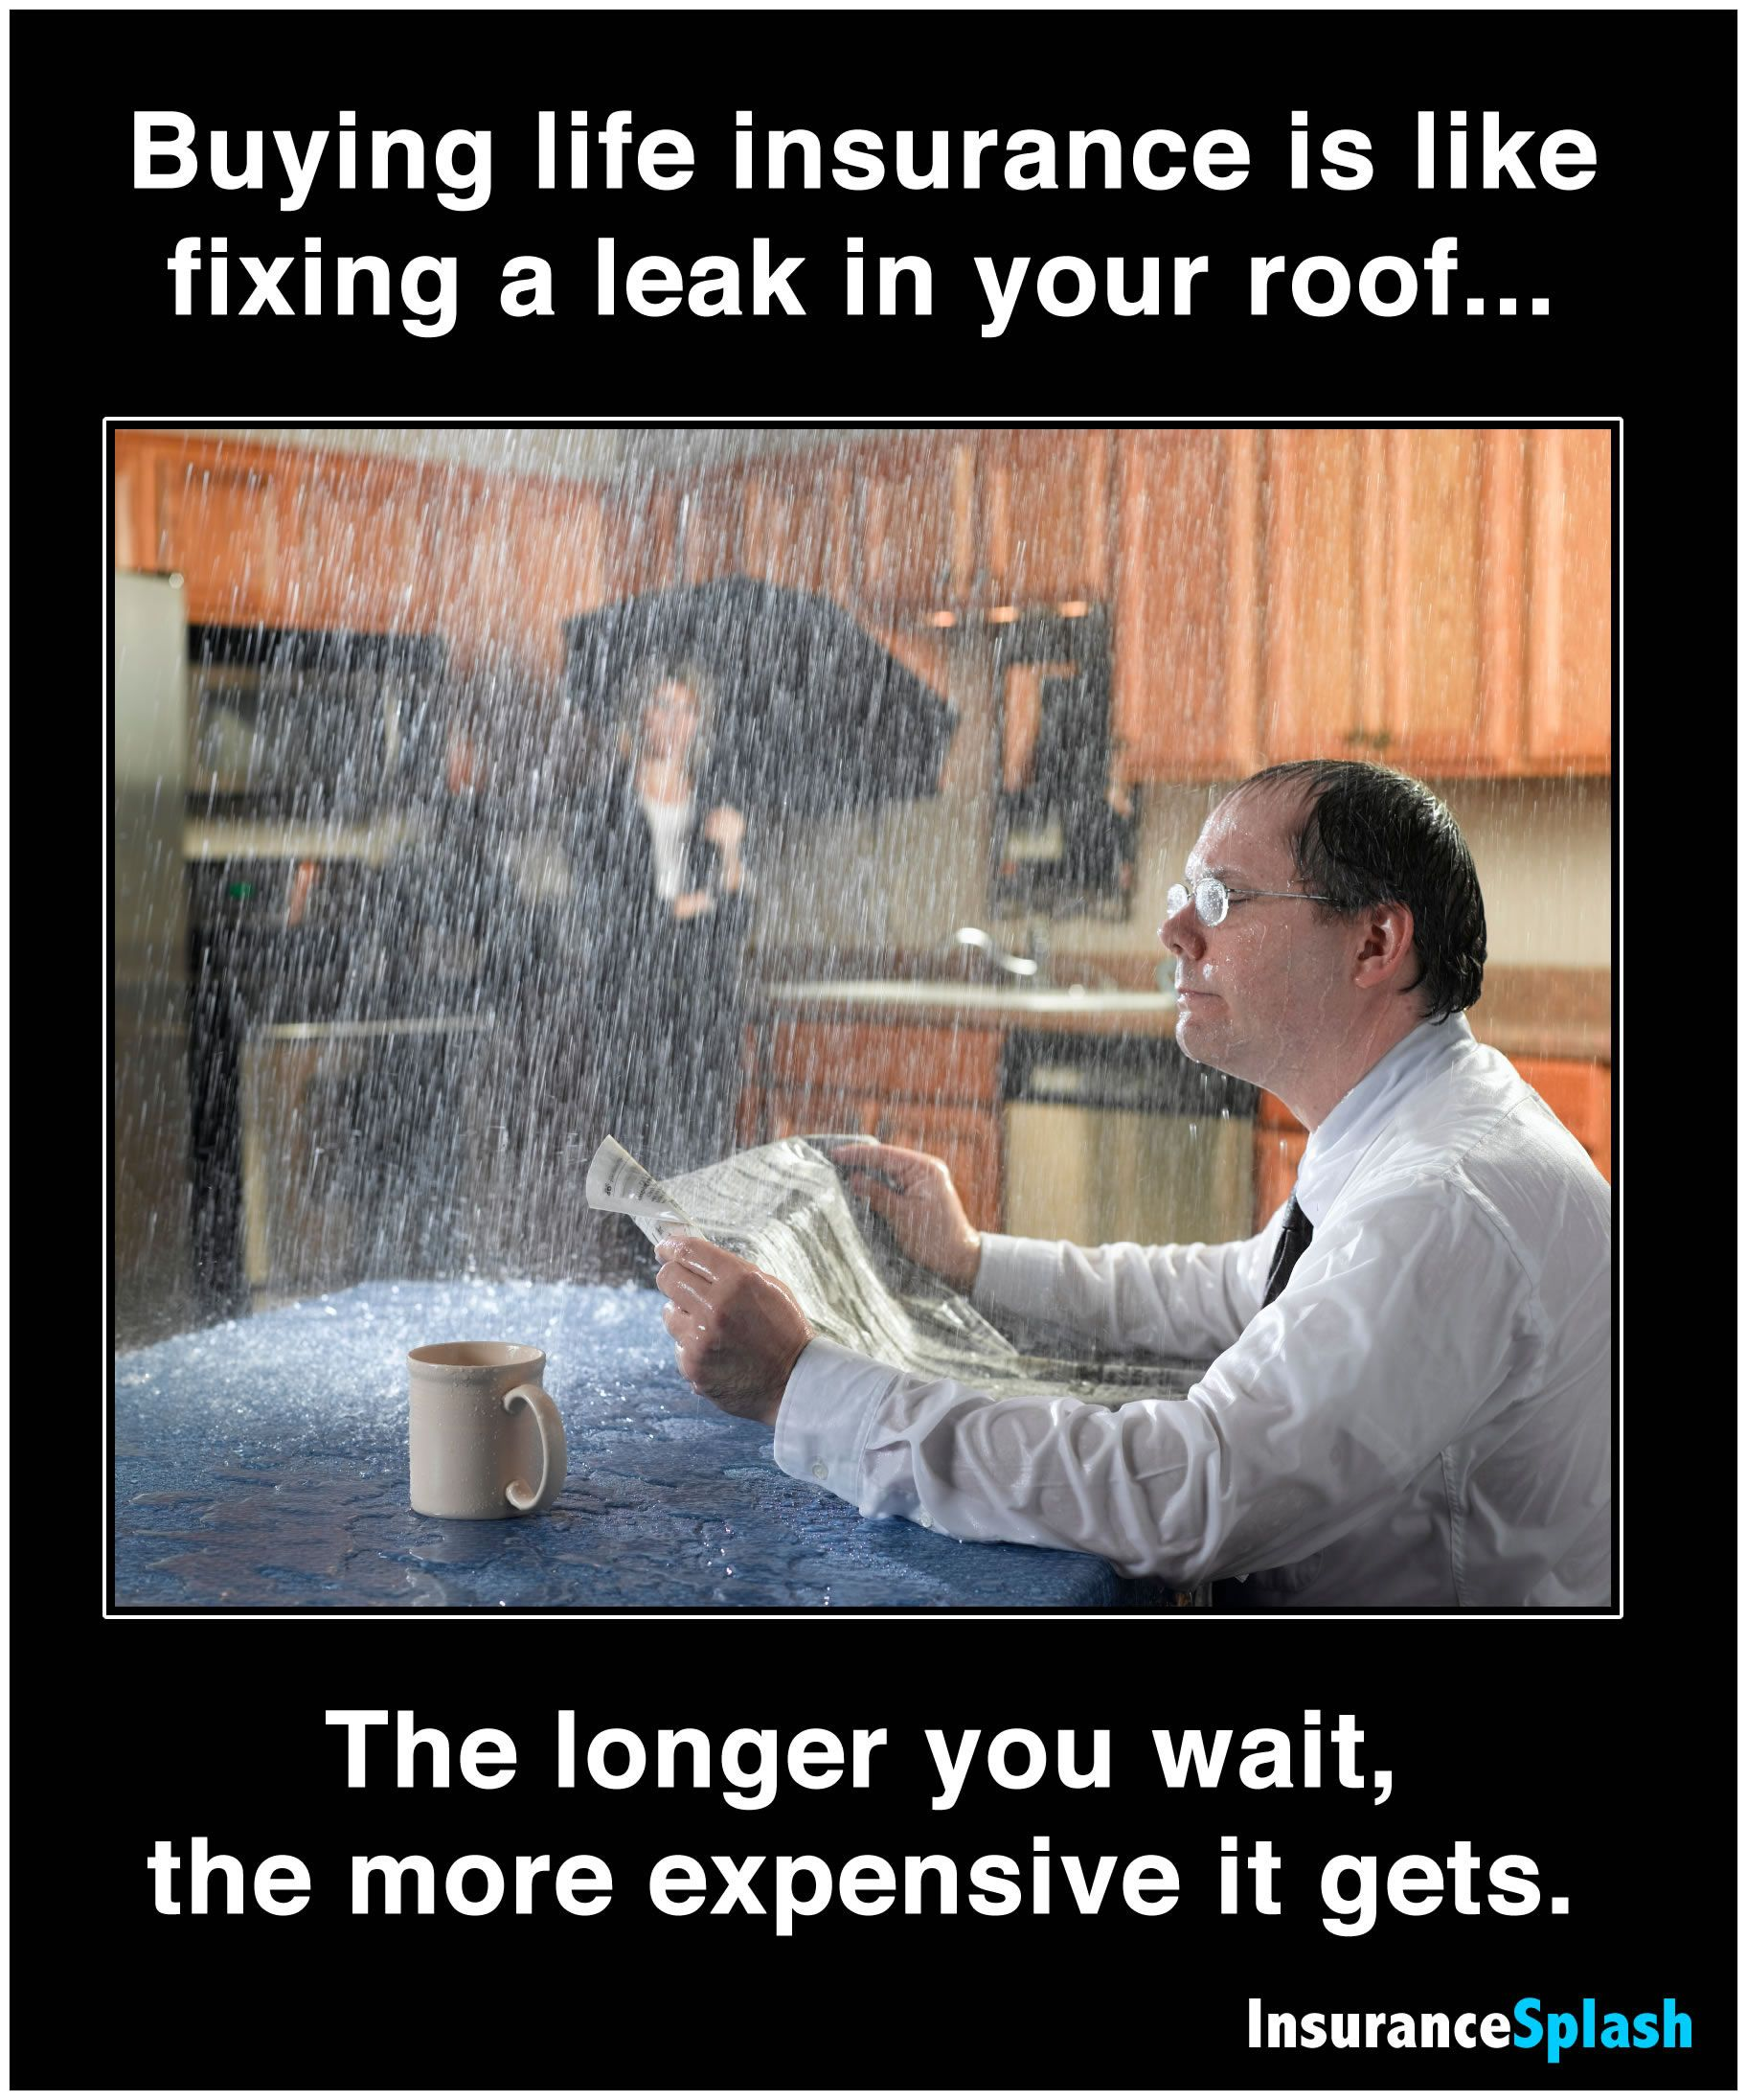 Term Life Insurance Quote Interesting Buying Life Insurance Is Like Fixing A Leak In Your Roofthe . Design Inspiration